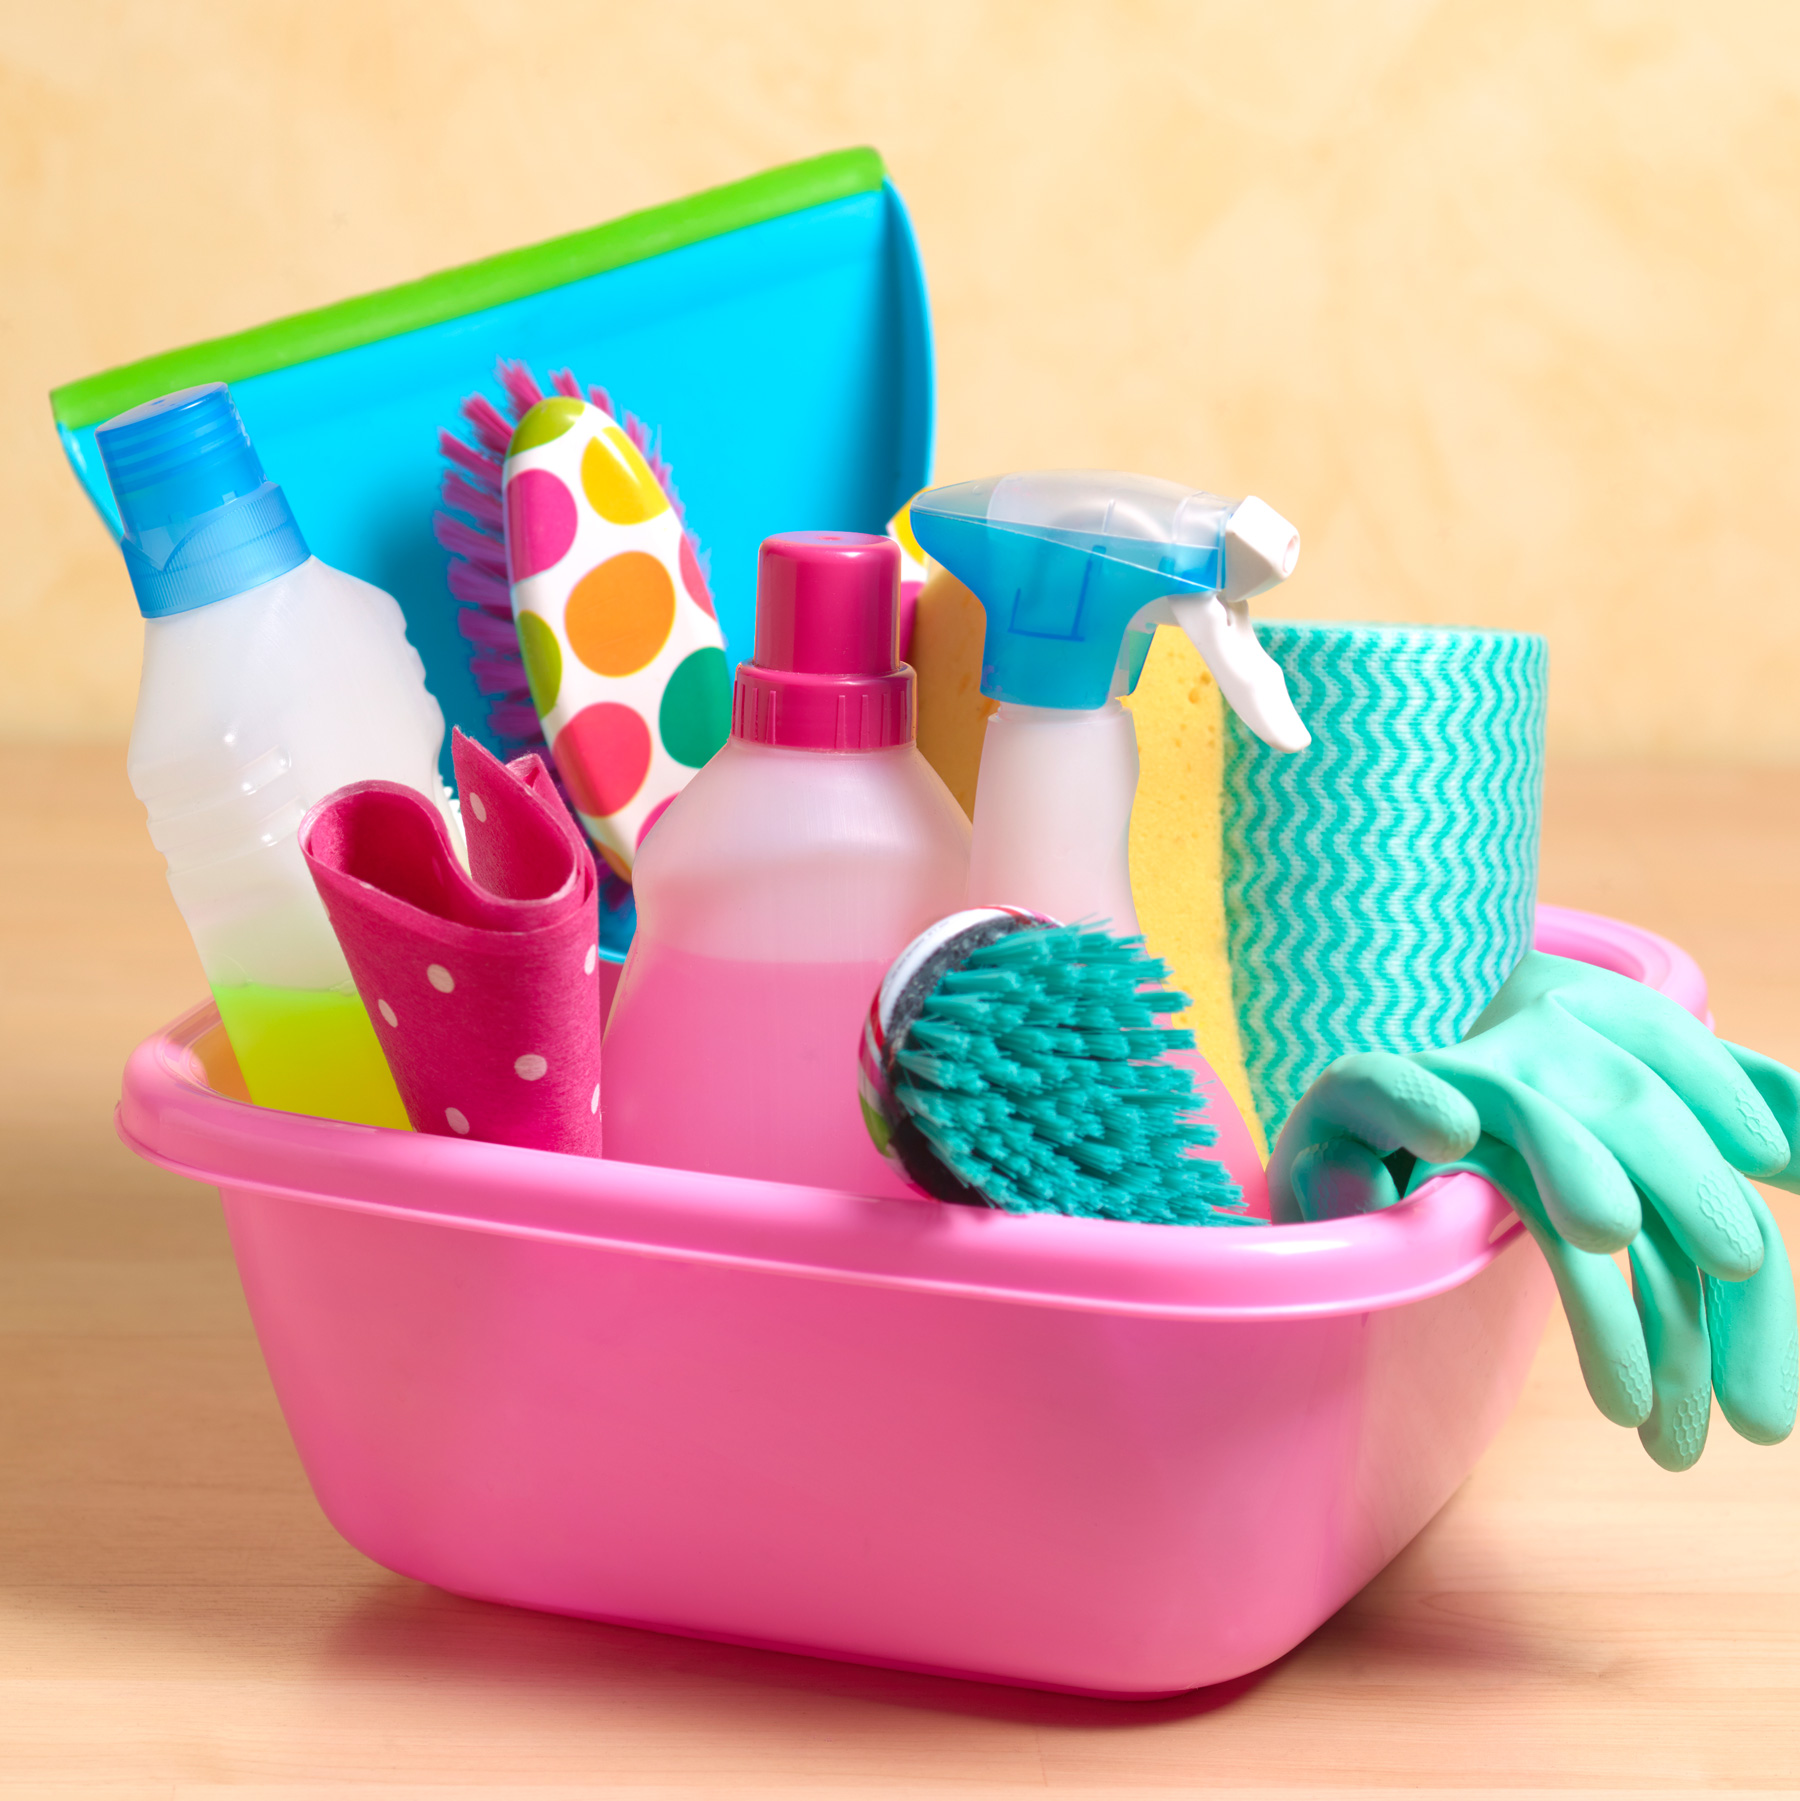 10 Ways to Make Your Home Greener: colorful generic cleaning products